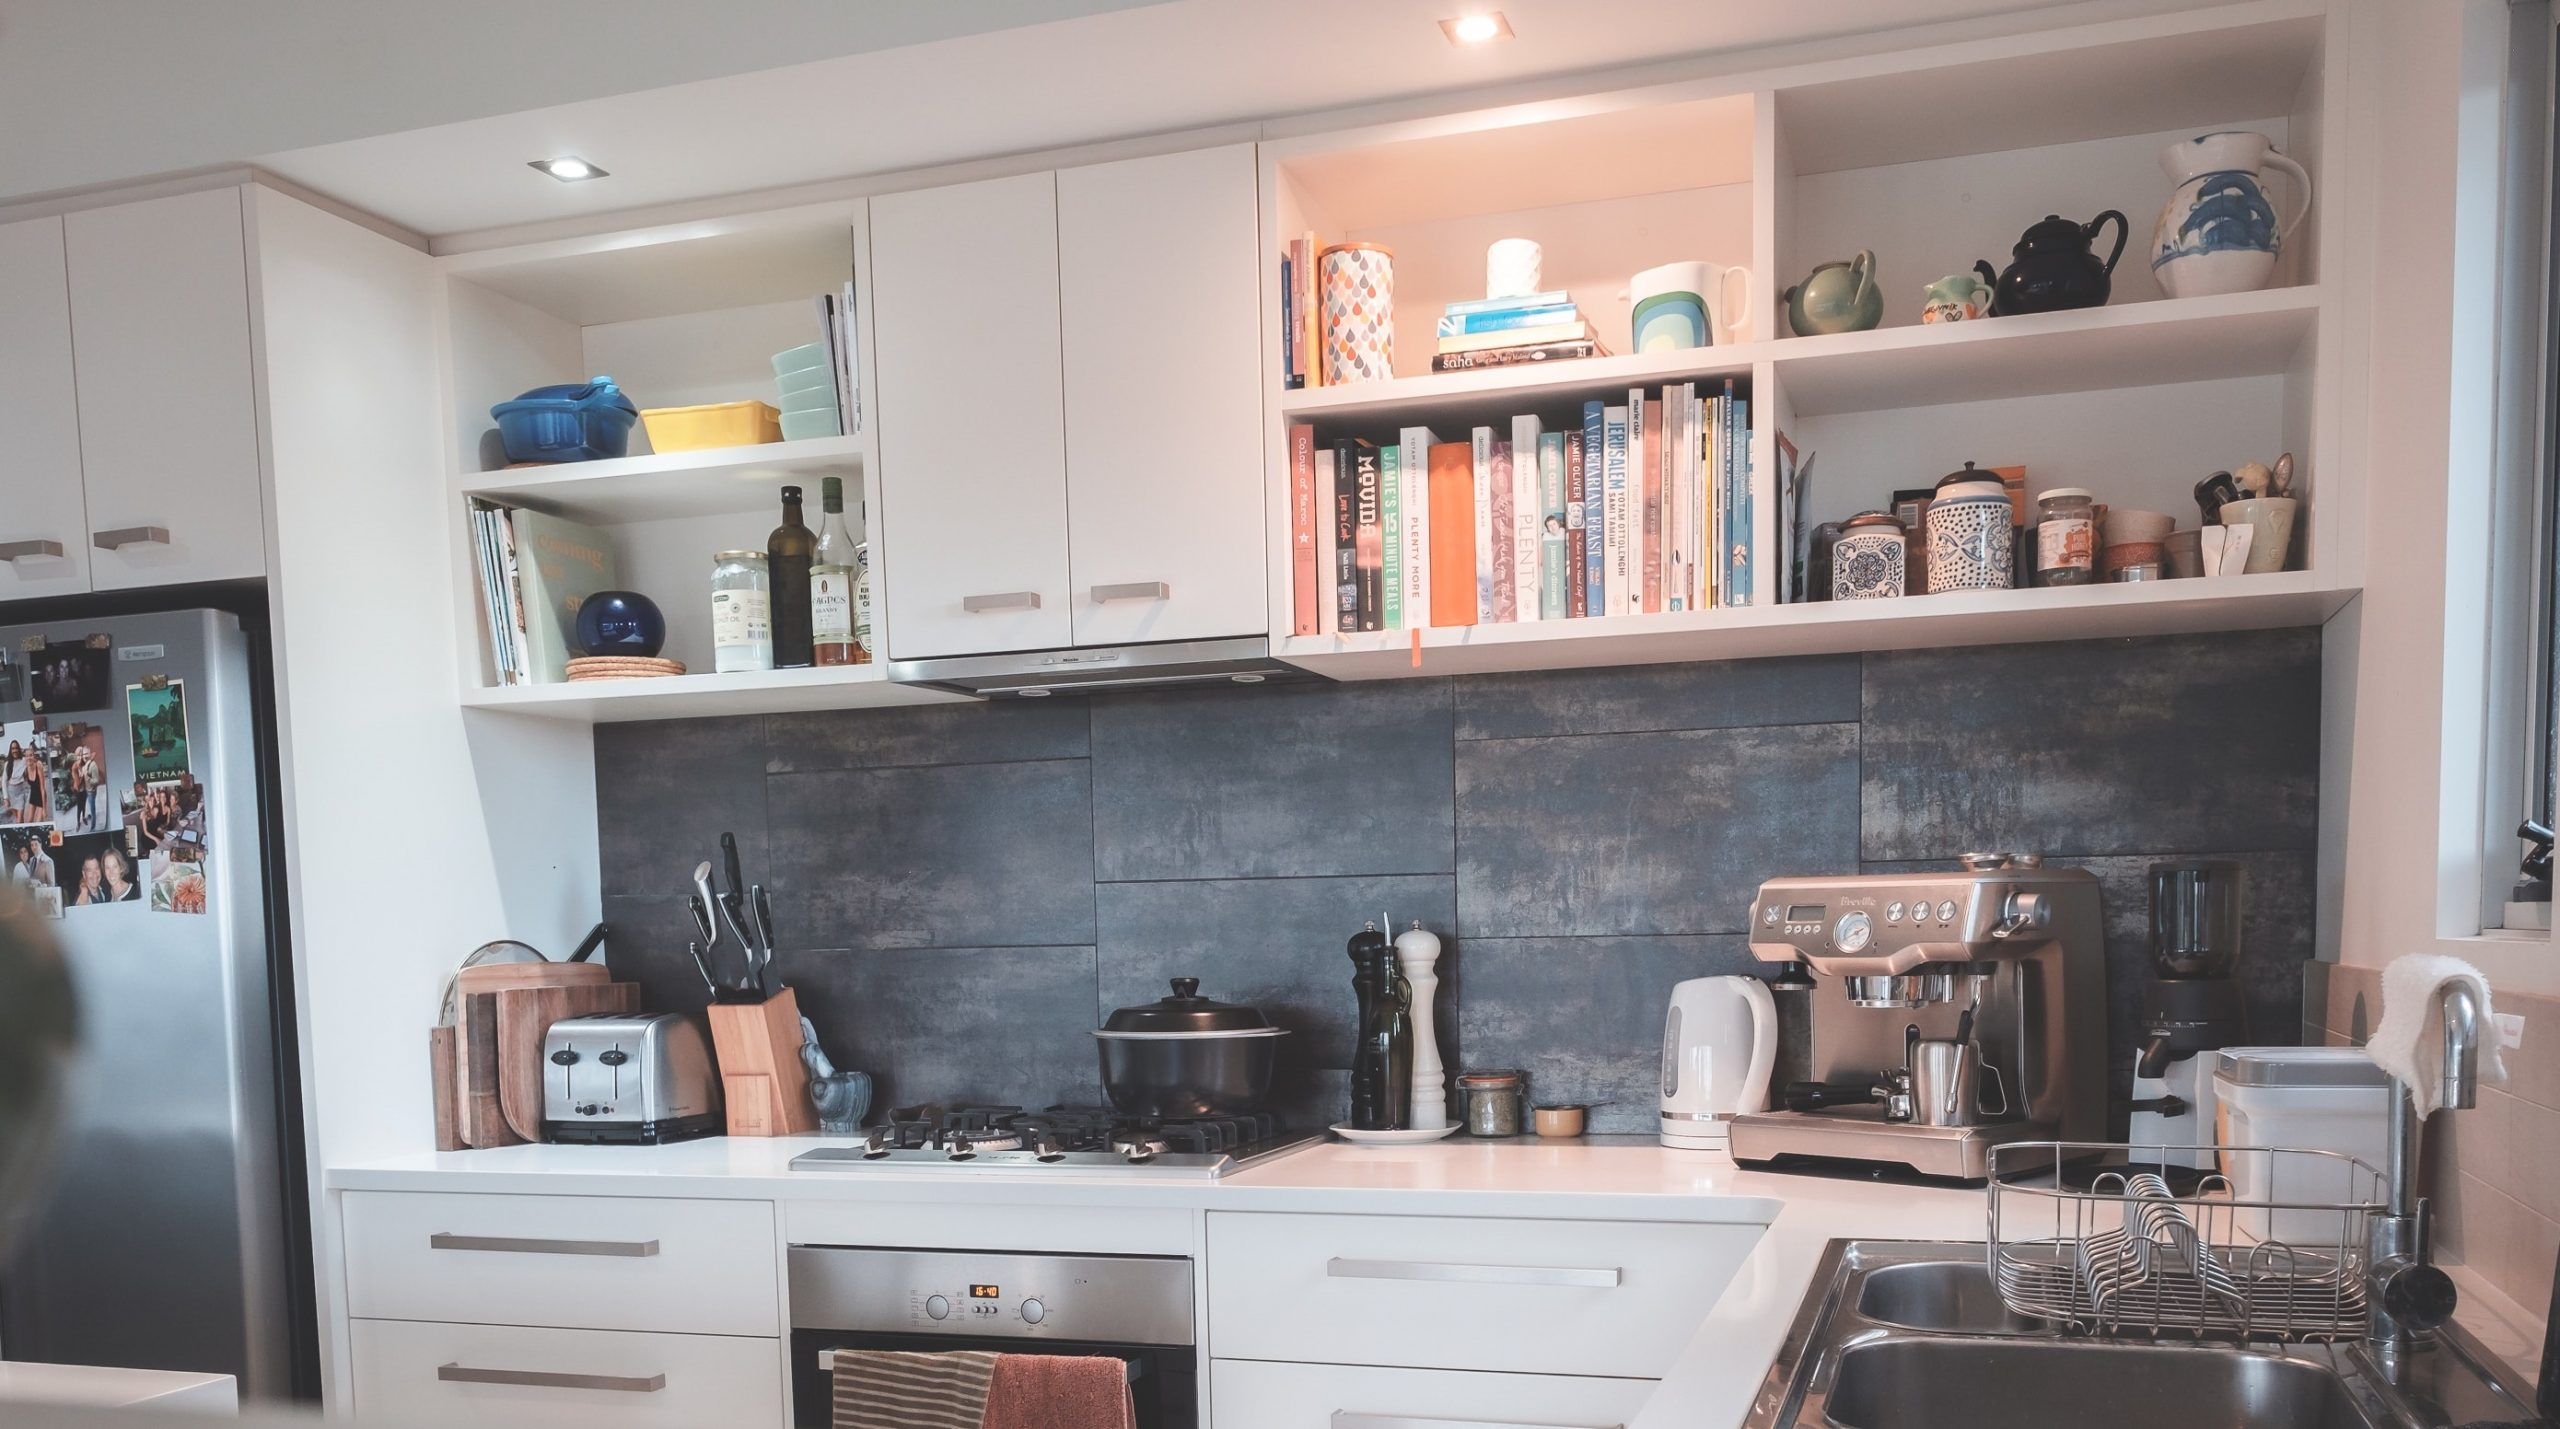 image of a kitchen with many small appliances